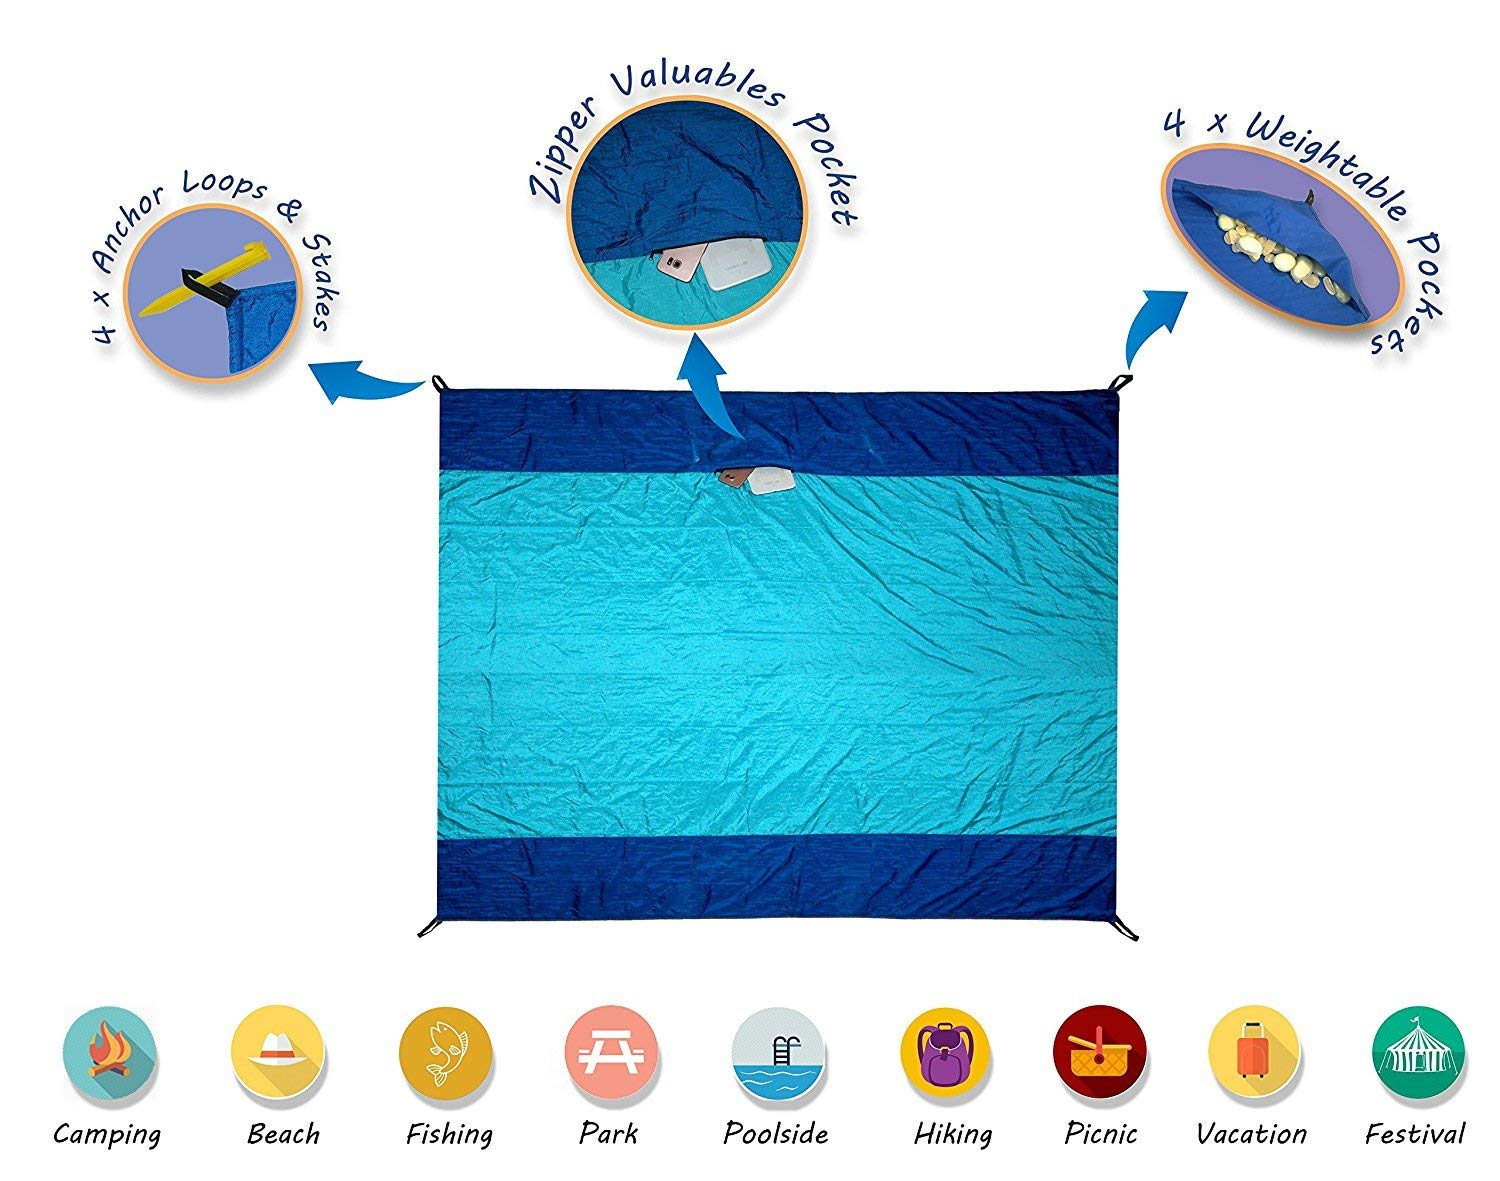 QUICKSAND MAT - THE INCREDIBLE SAND-FREE BEACH MAT